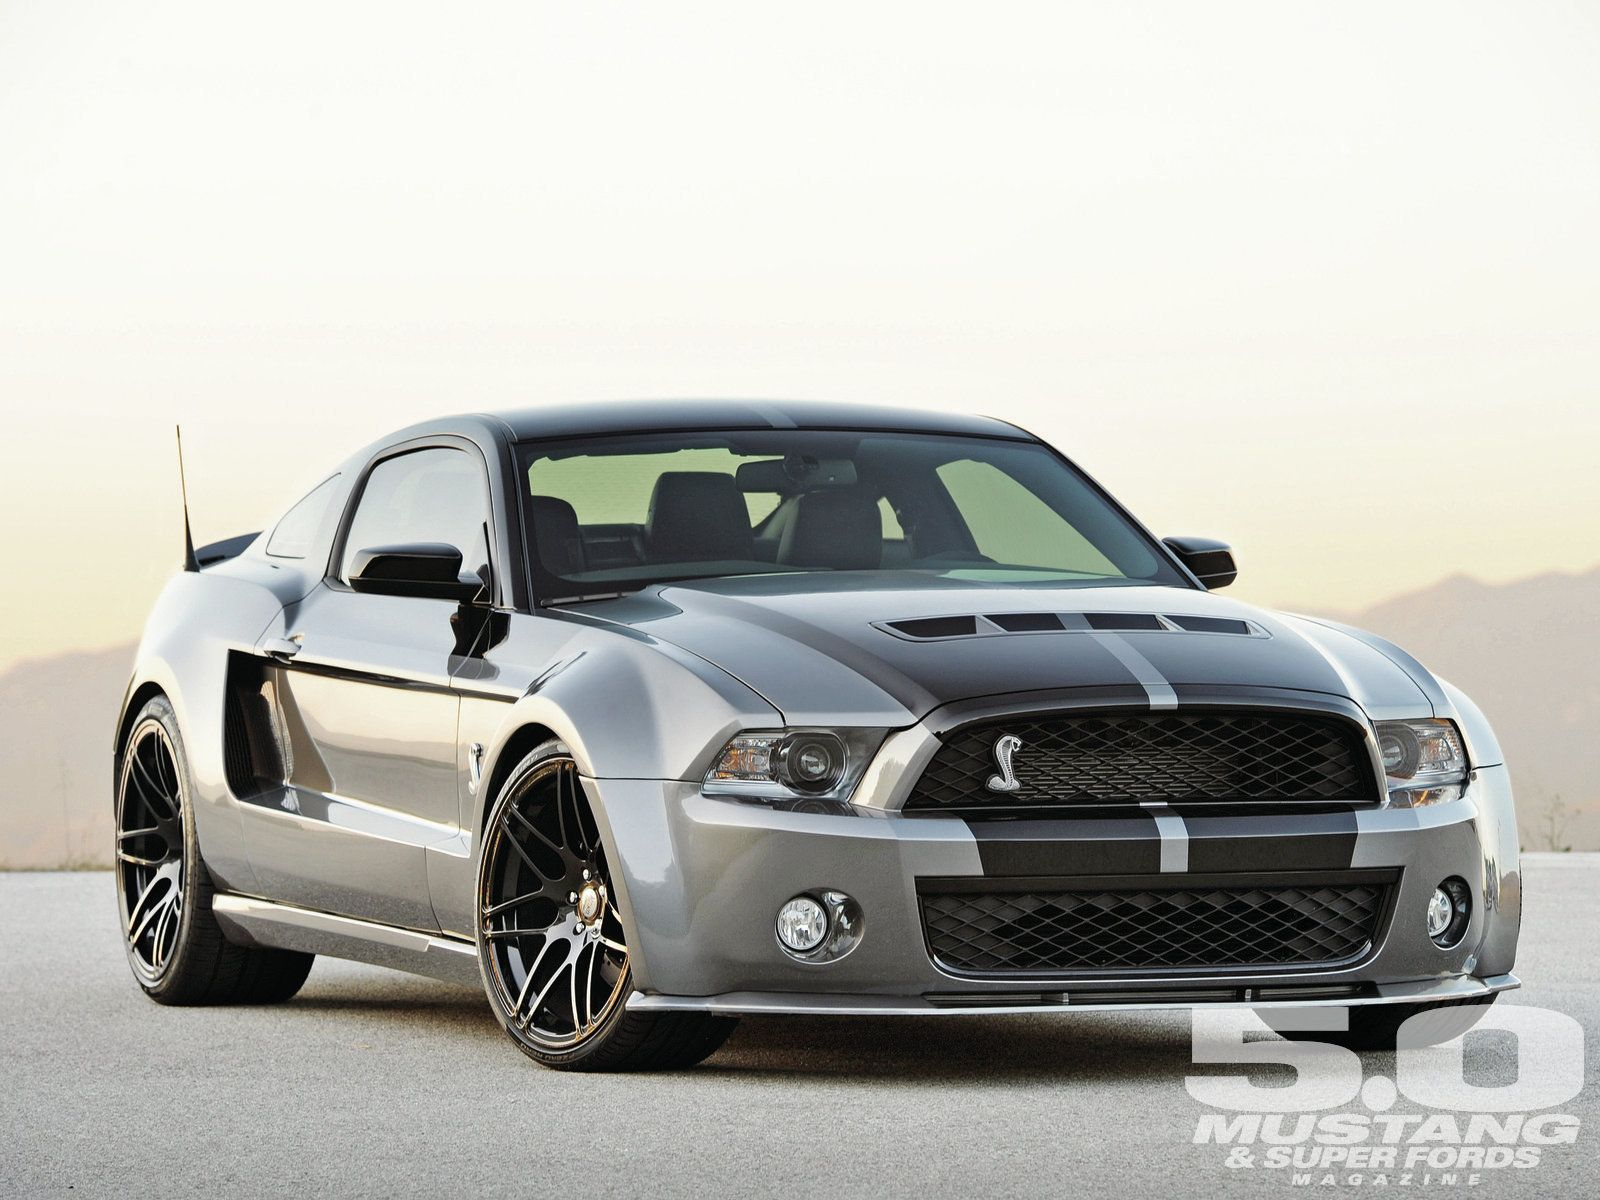 Silver ford mustang with black racing stripes